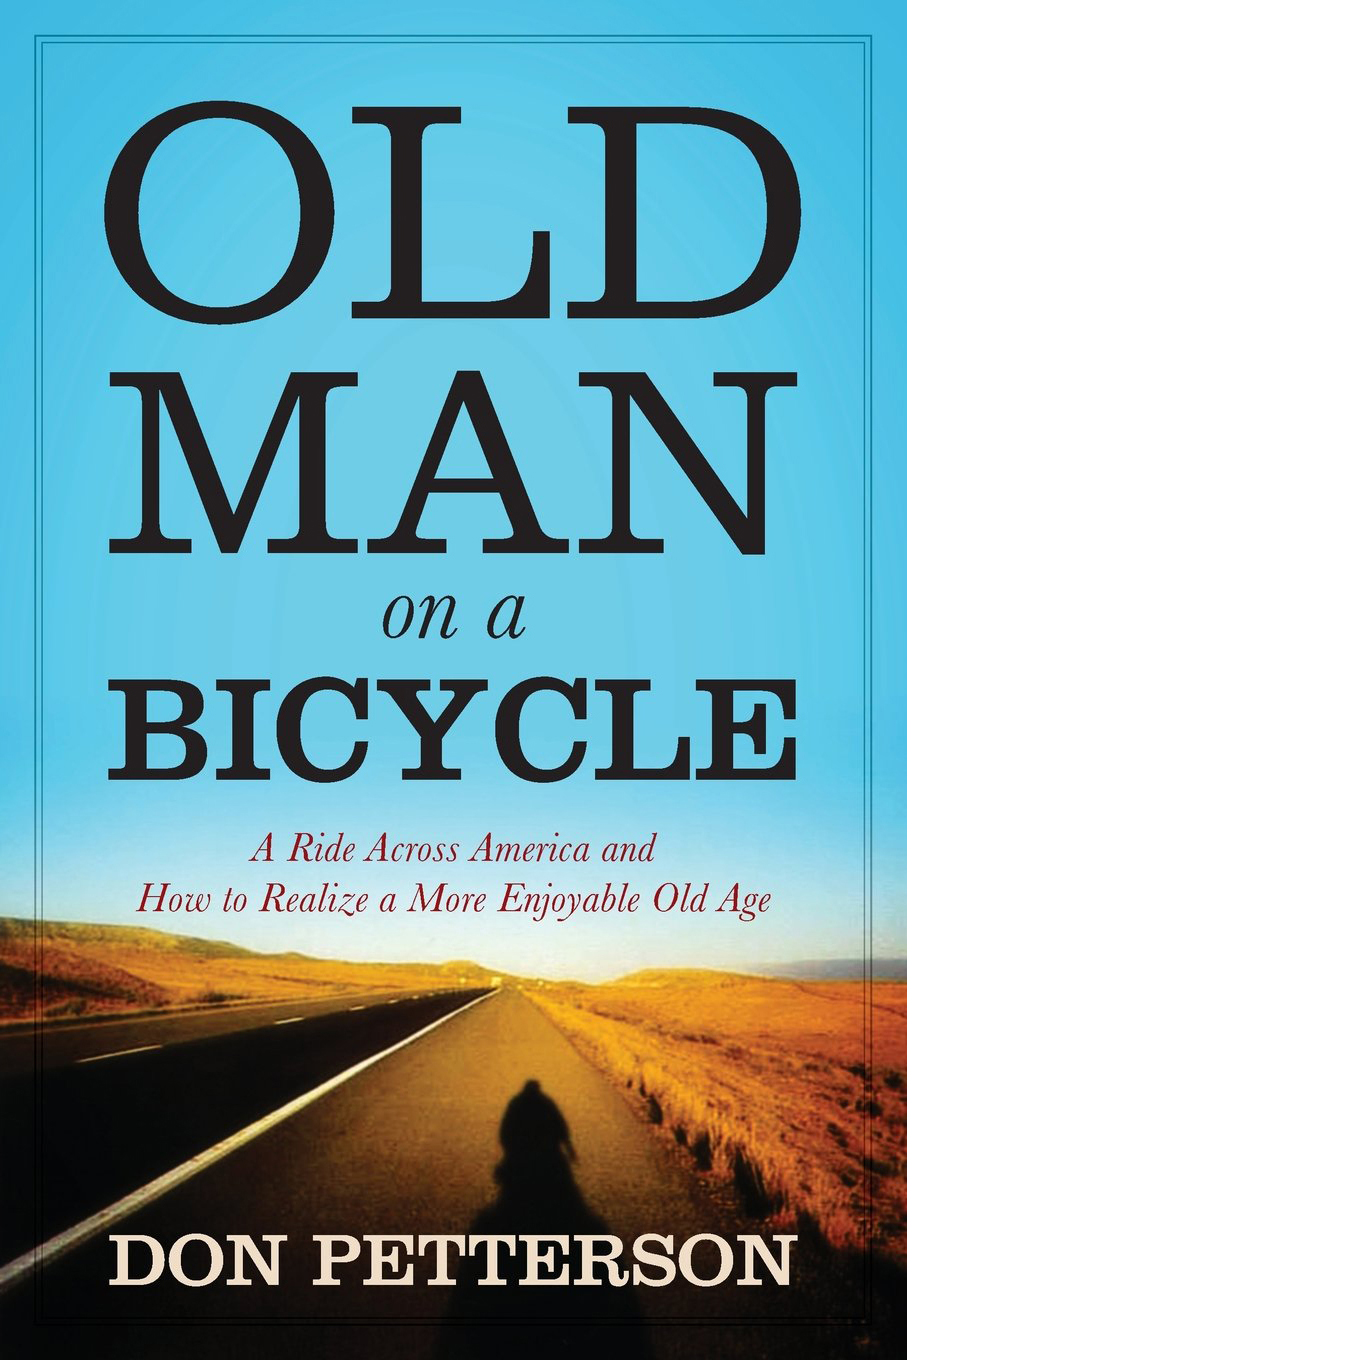 Old Man on a Bicycle: A Ride Across America and How to Realize a More Enjoyable Old Age  -  June 10, 2014  When Don Petterson, a former American ambassador, told family and friends he intended to ride a bicycle from New Hampshire to San Francisco, most of them questioned his judgment, if not his sanity.He was in his seventies, hadn't been on a bike for years, and had never ridden more than a few miles at a time.    $5.26 Kindle   |   $13.95 Paperback